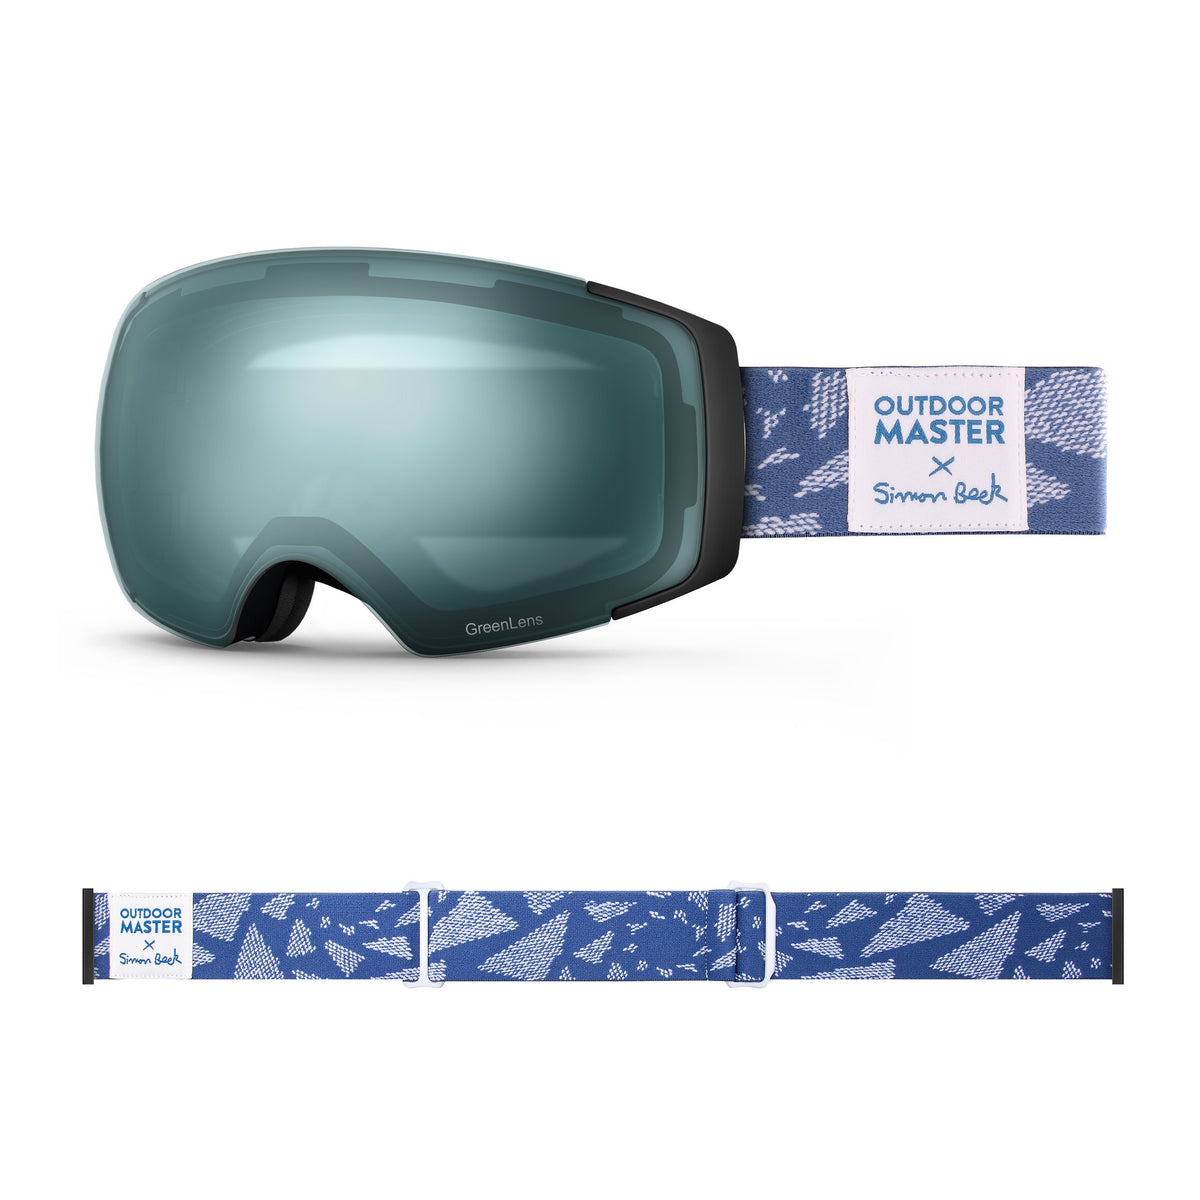 OutdoorMaster x Simon Beck Ski Goggles Pro Series - Snowshoeing Art Limited Edition OutdoorMaster GreenLens VLT 20% TAC Green Polarized Flying Triangles